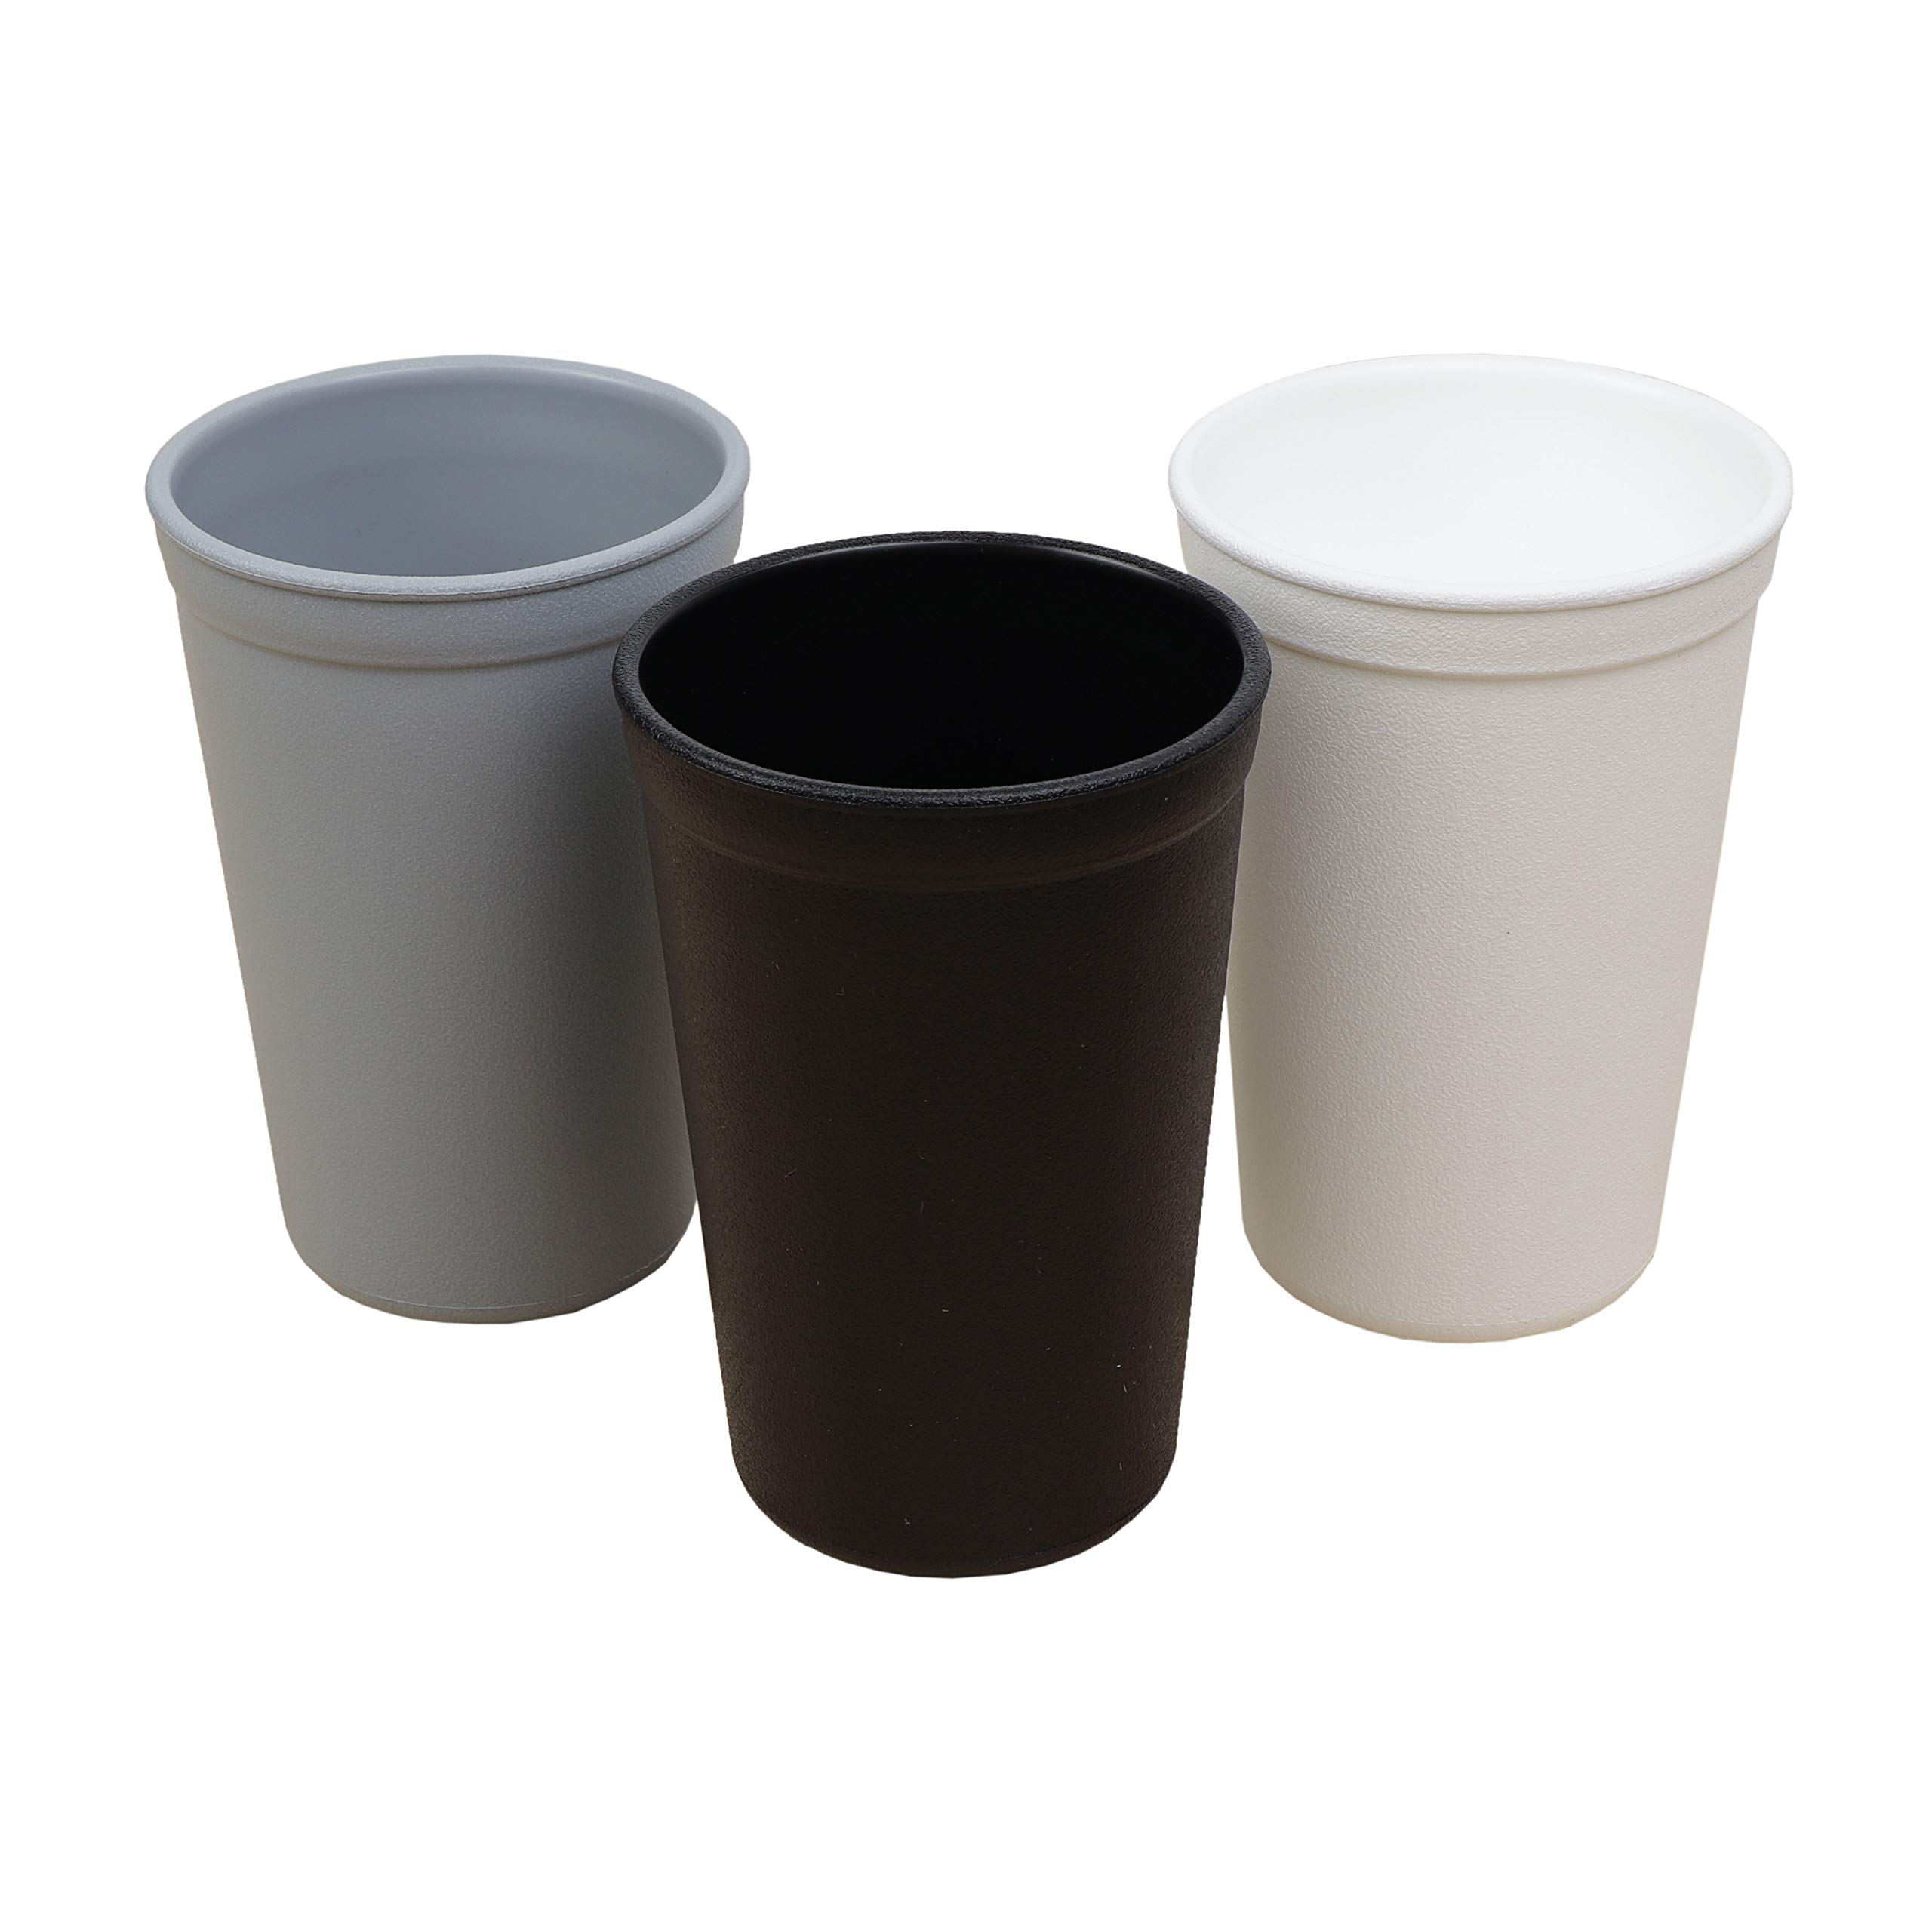 Re-Play Made in The USA 3pk Heavy Duty 10 oz.Drinking Cups  Eco Friendly Recycled HDPE - Virtually Indestructible   Grey,Black,White(Monochrome)